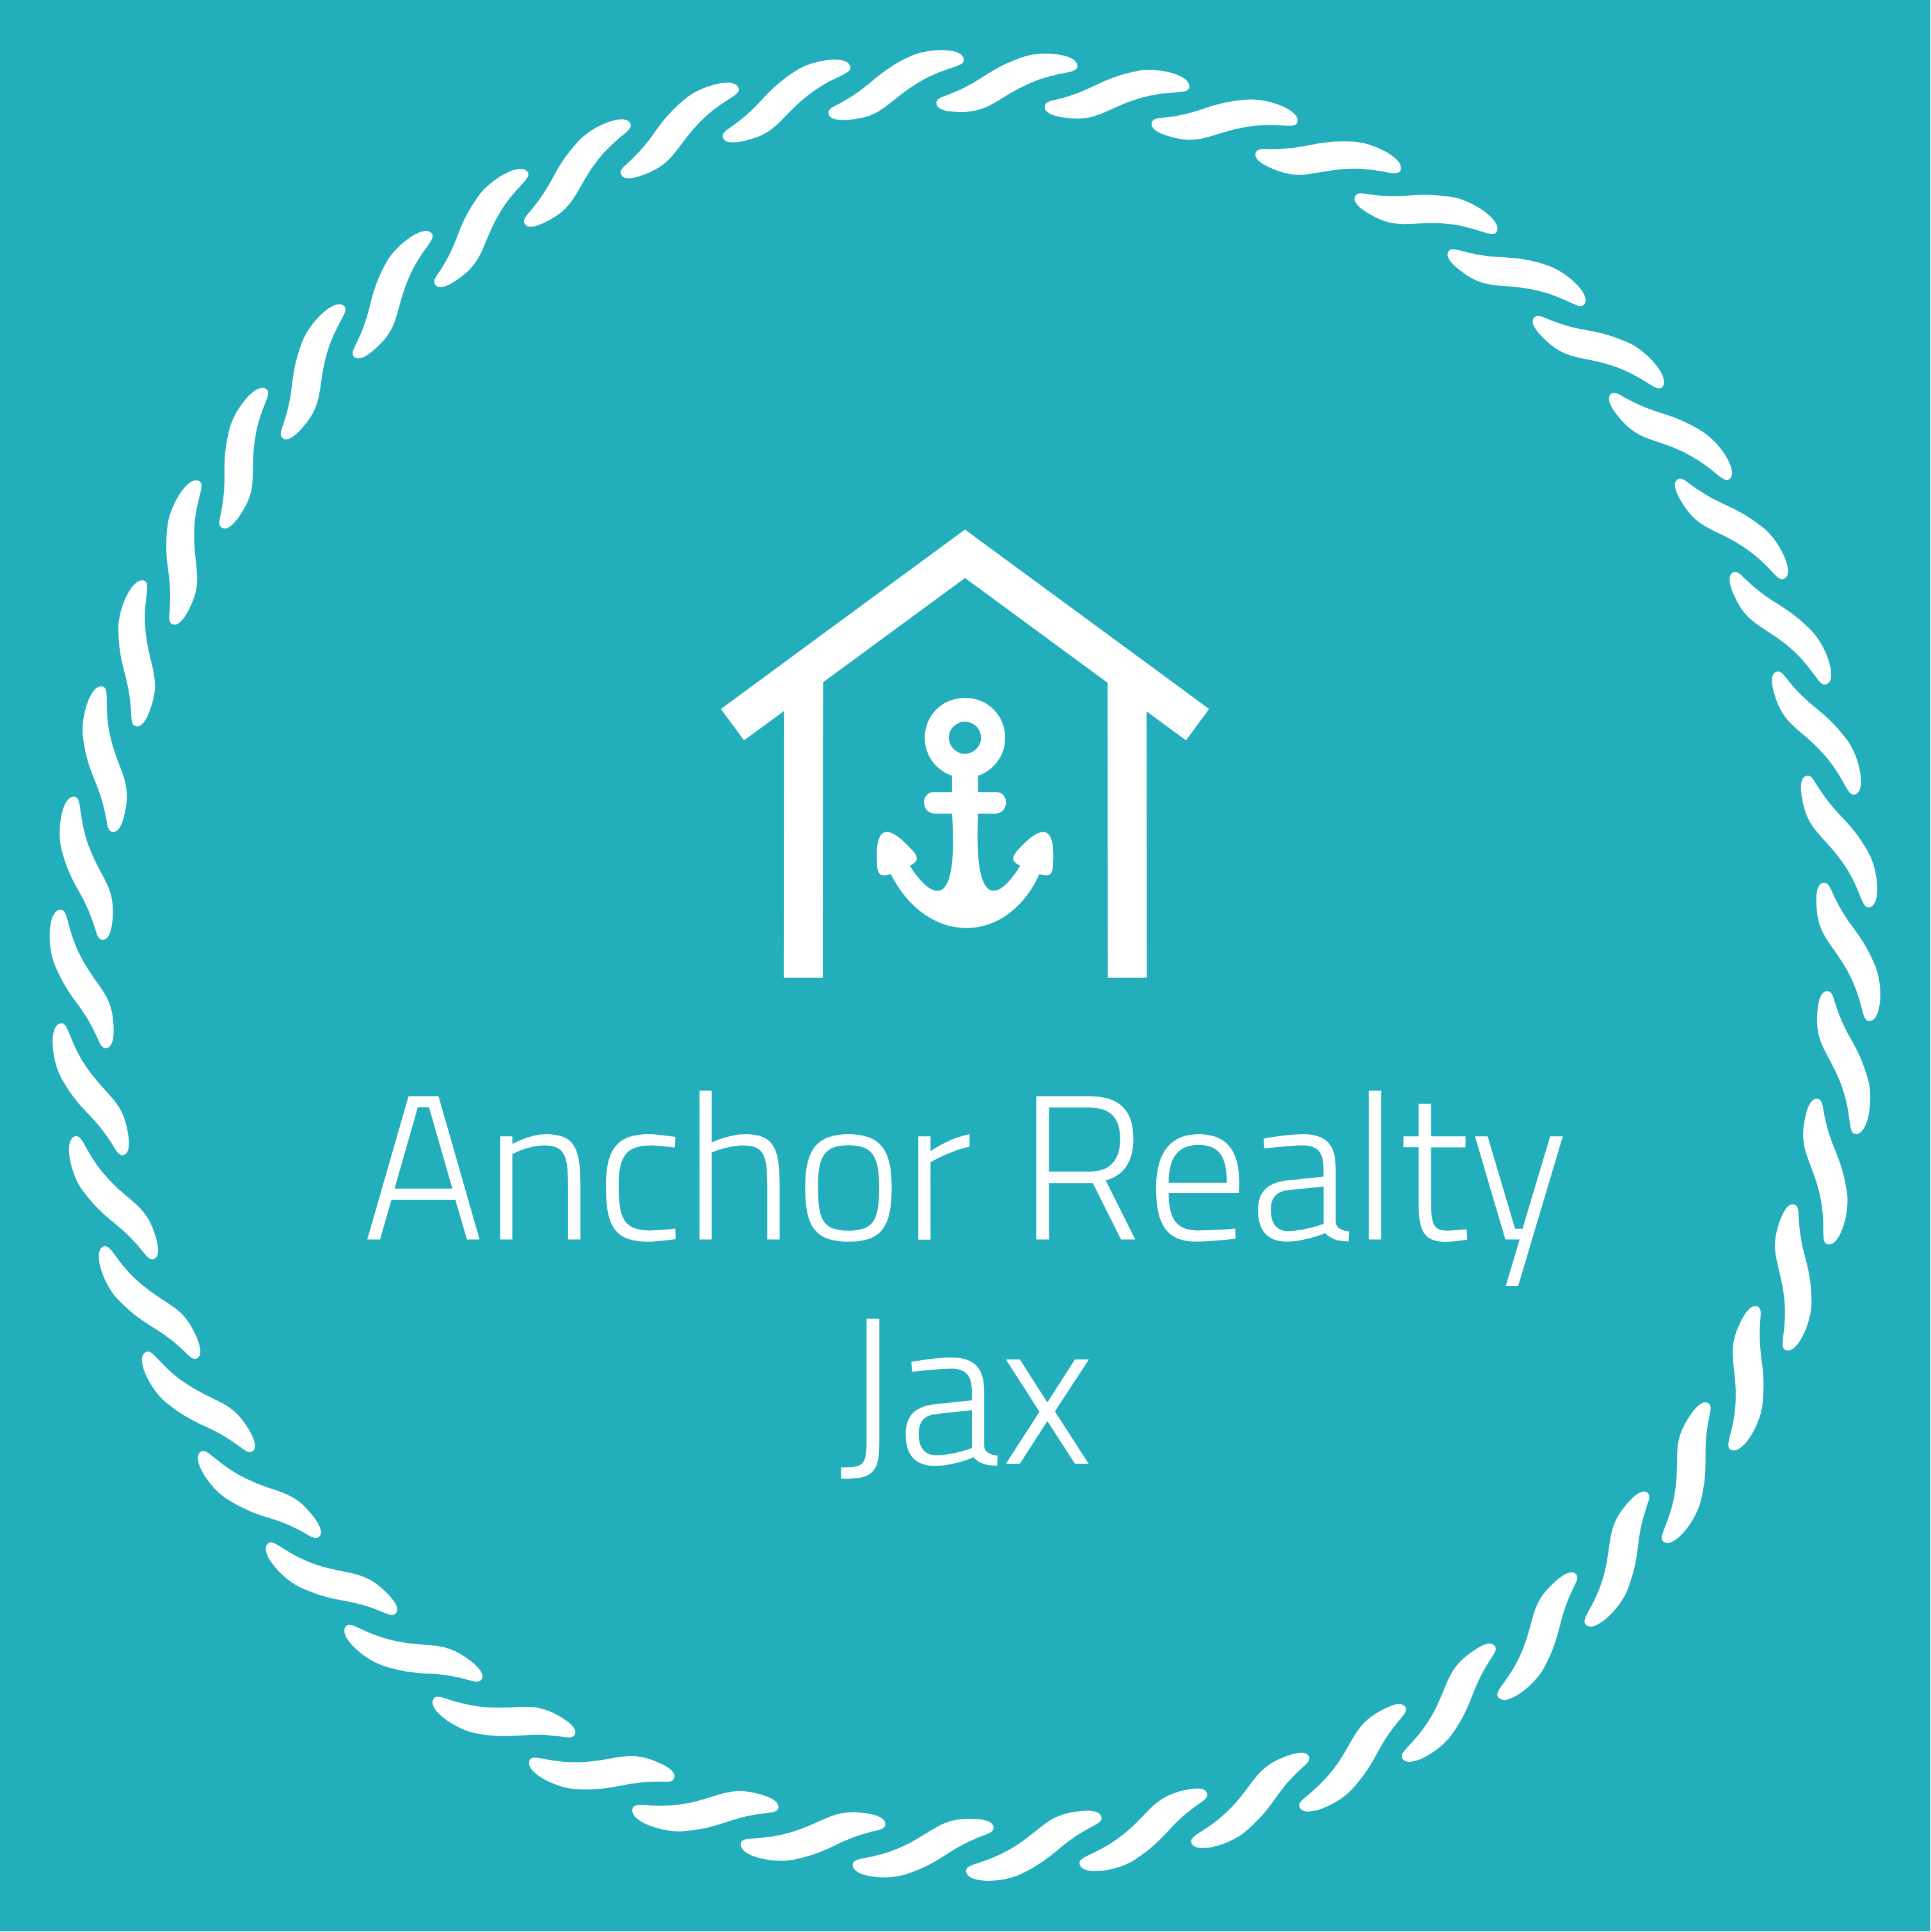 Anchor Realty Jax